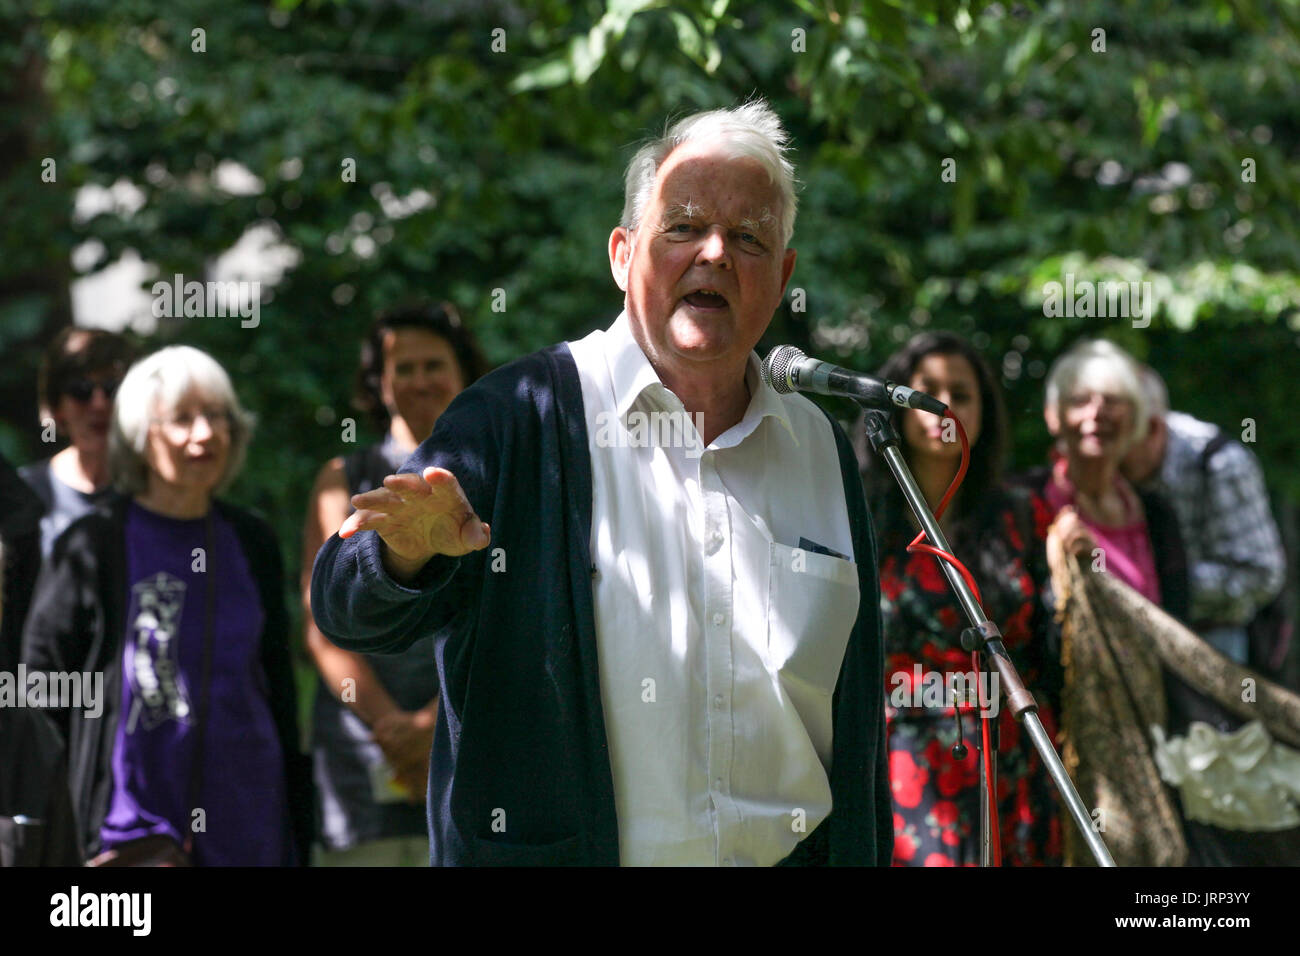 London, UK. 6th August, 2017. Bruce Kent, Vice-President of the Campaign for Nuclear Disarmament (CND), addresses peace campaigners attending the annual Hiroshima Day anniversary event in Tavistock Square, next to the commemorative Hiroshima cherry tree. Credit: Mark Kerrison/Alamy Live News - Stock Image